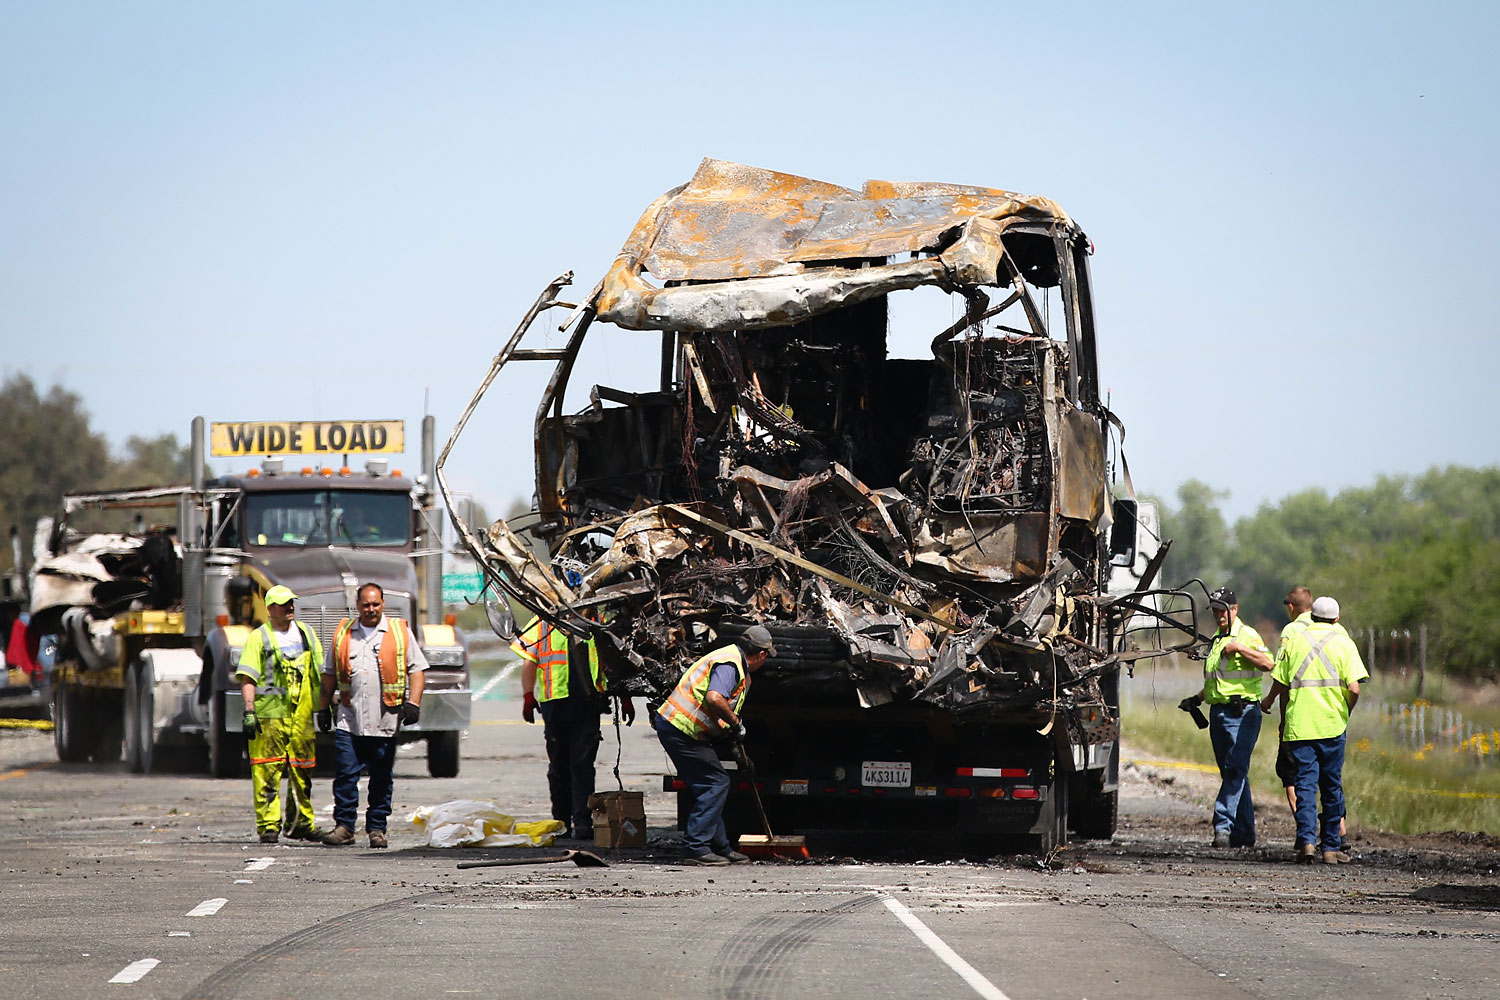 A bus involved in the deadly crash is loaded on to a truck at the scene on April 11, 2014  in Orland, California.